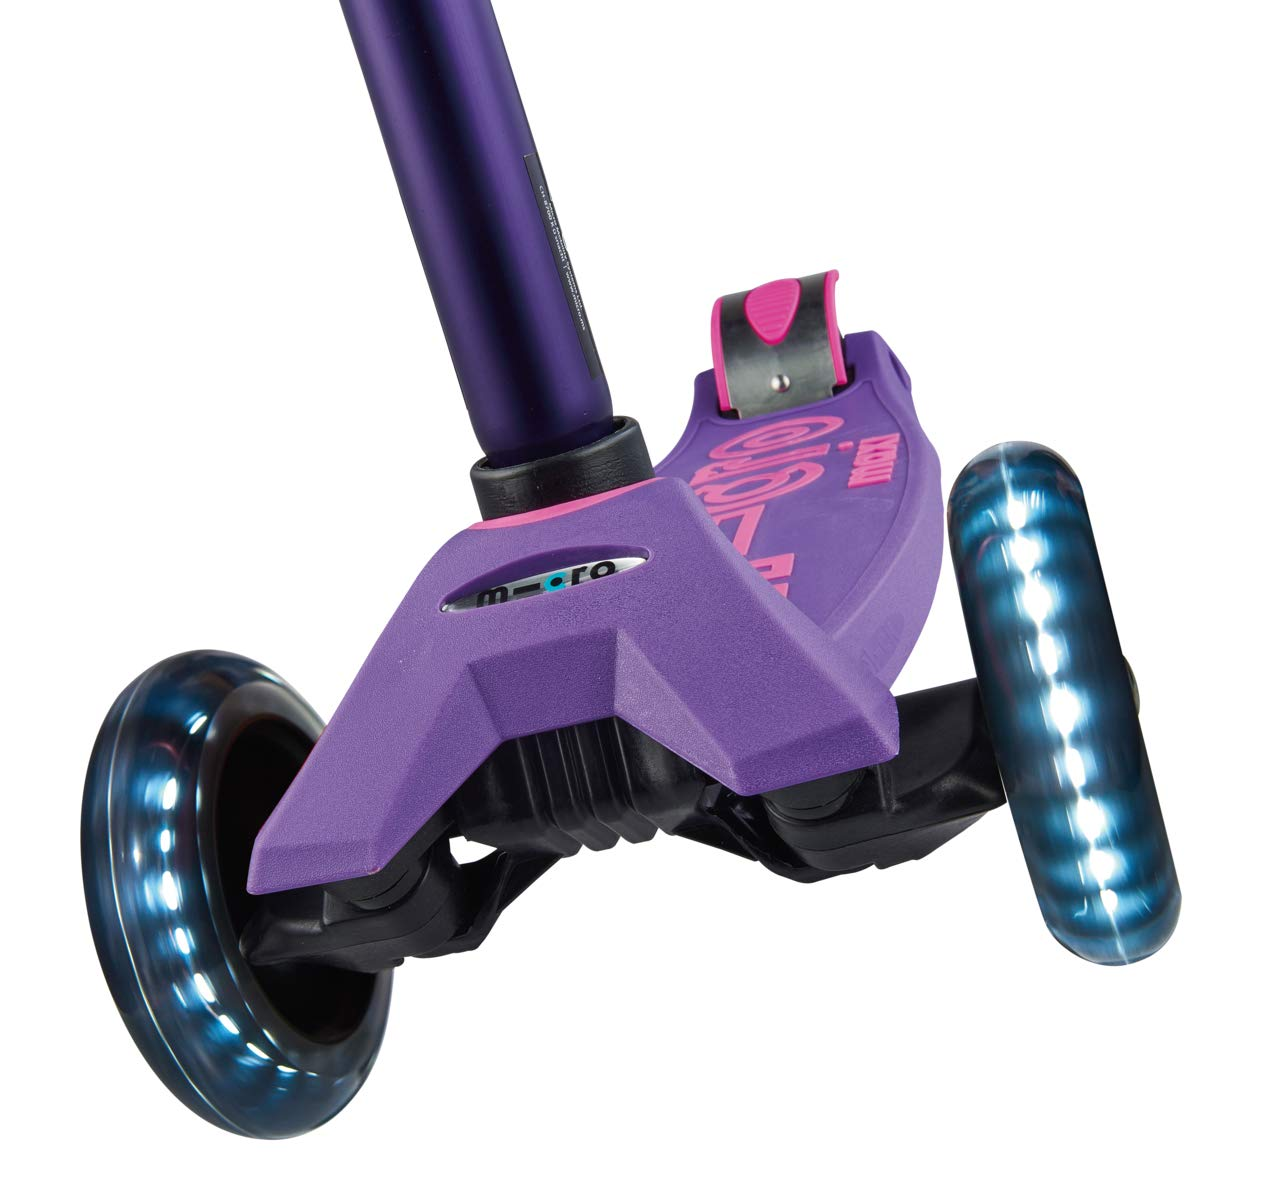 Micro Maxi Deluxe - LED 3-Wheeled, Lean-to-Steer, Swiss-Designed Micro Scooter for Kids with LED Light-up Wheels, Ages 5-12 - Purple by Micro Kickboard